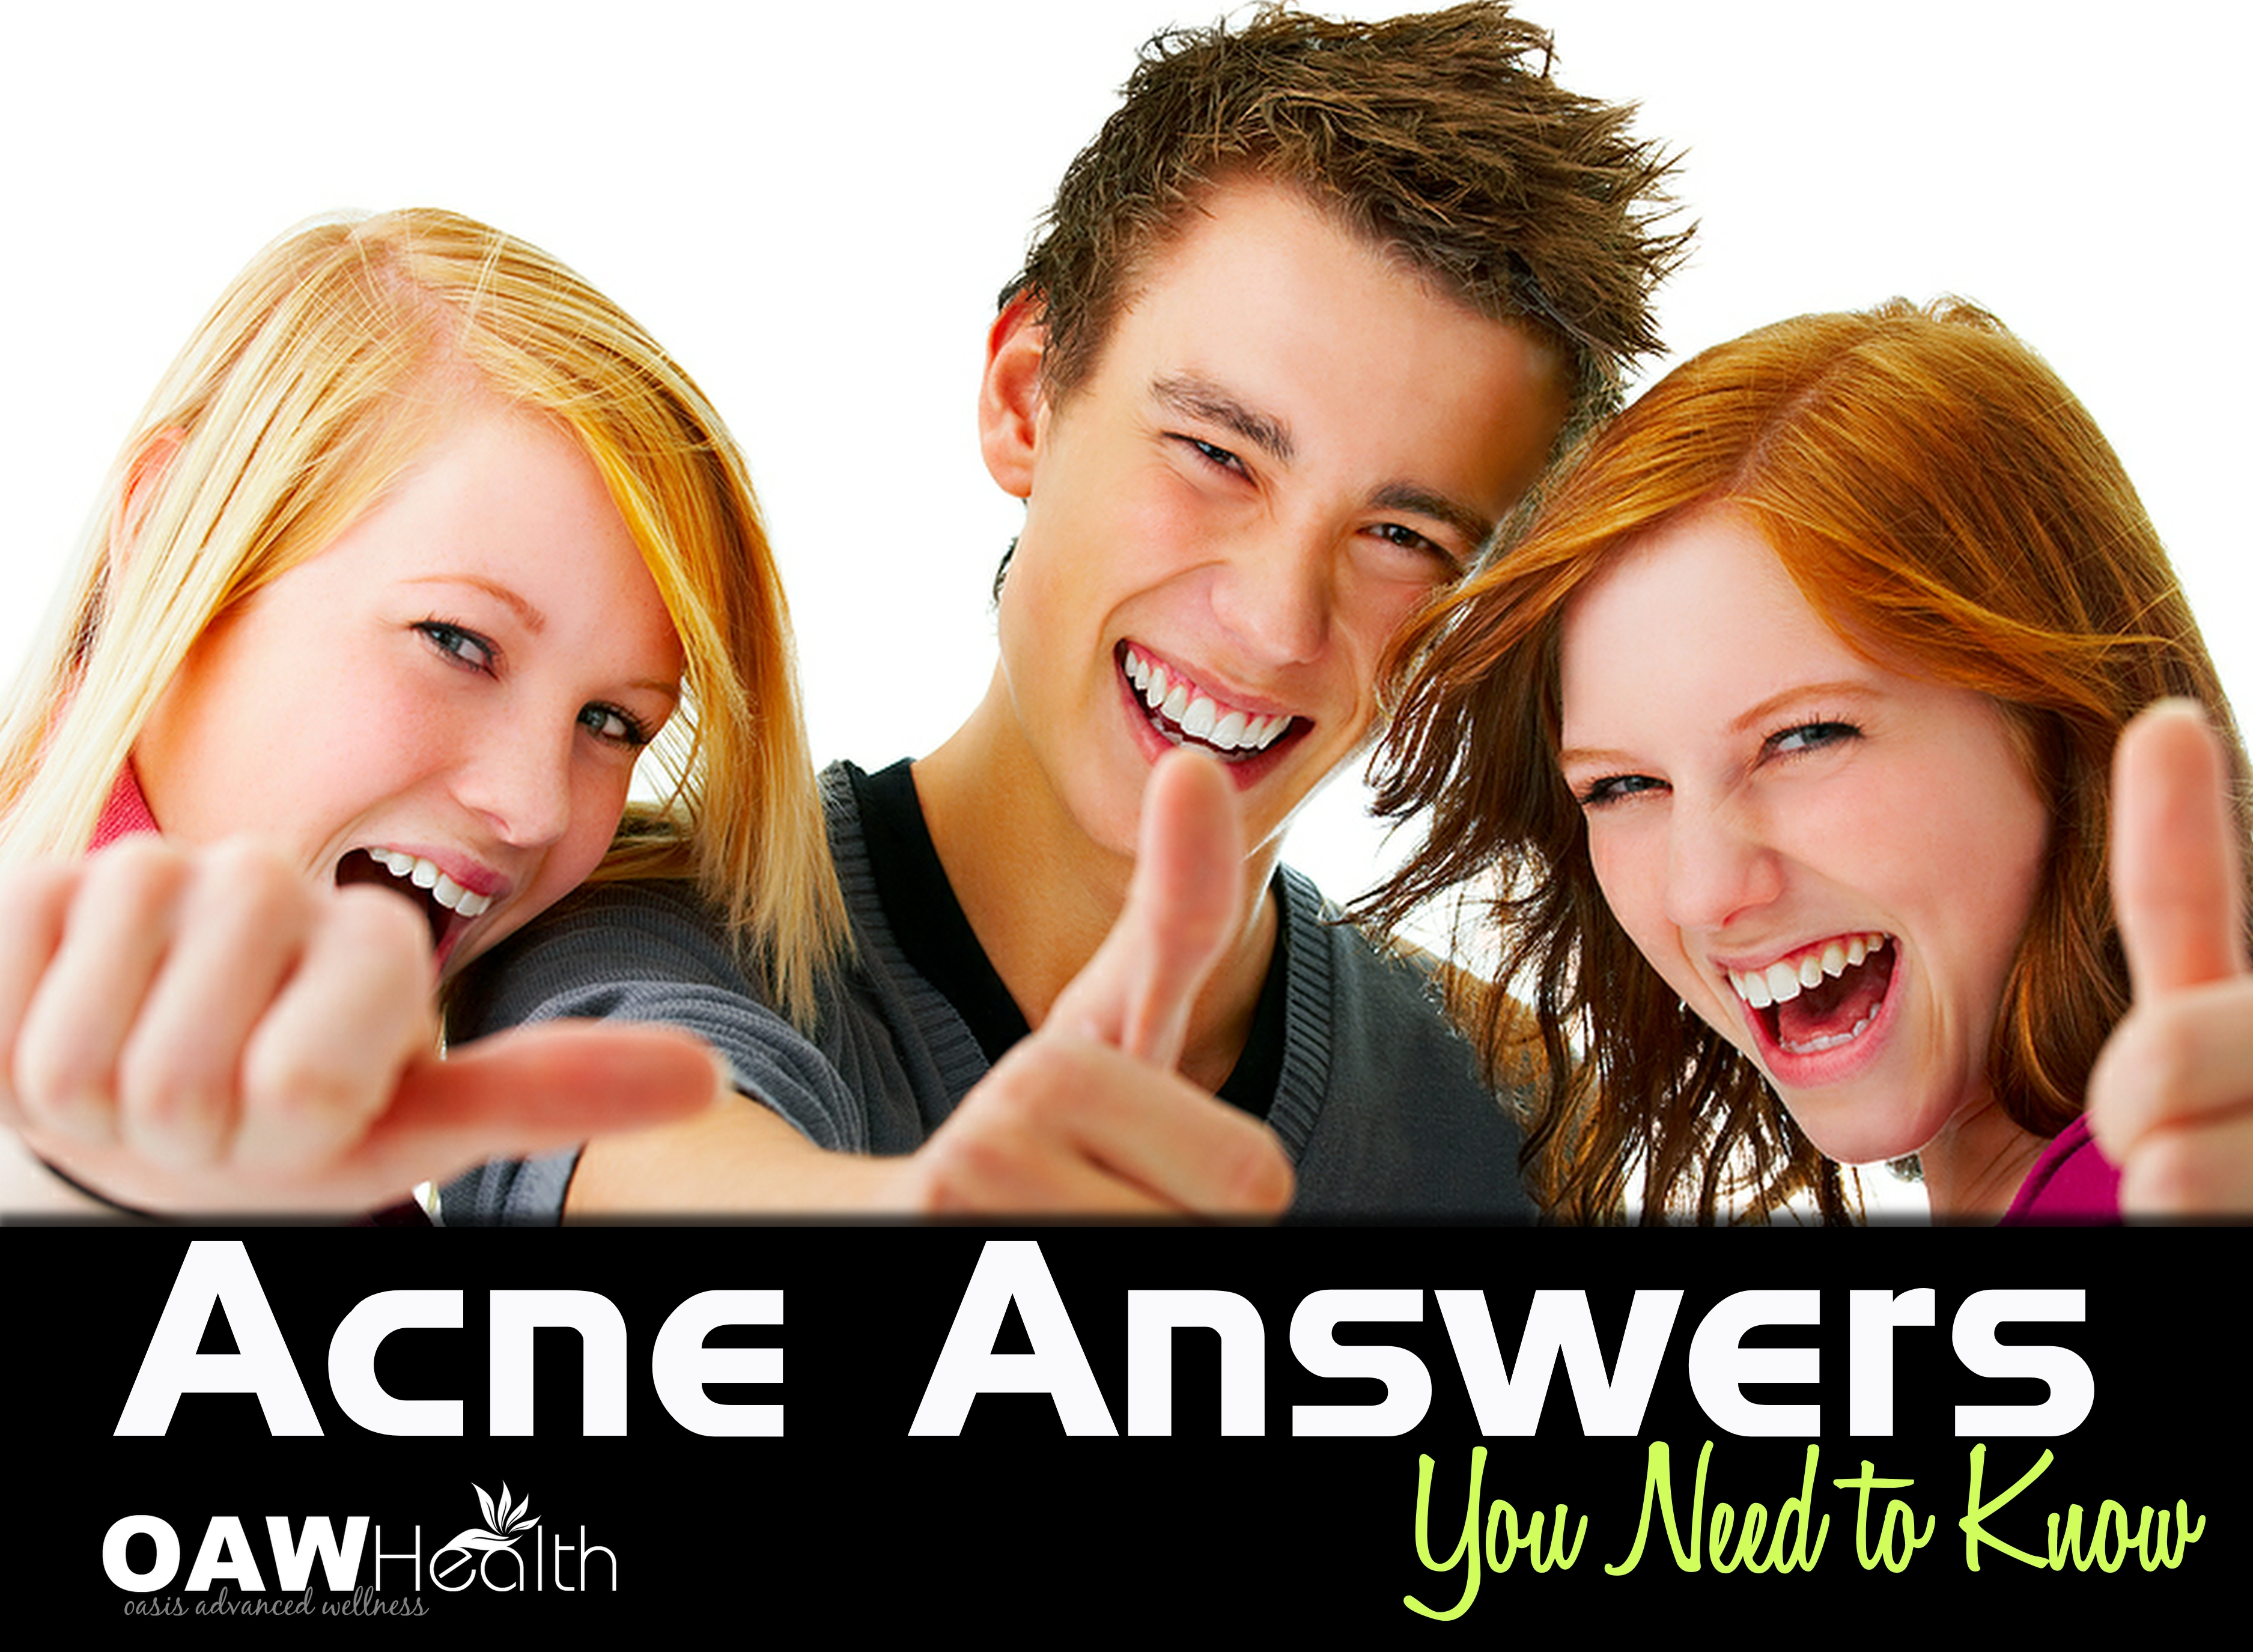 Acne Answers You Need to Know